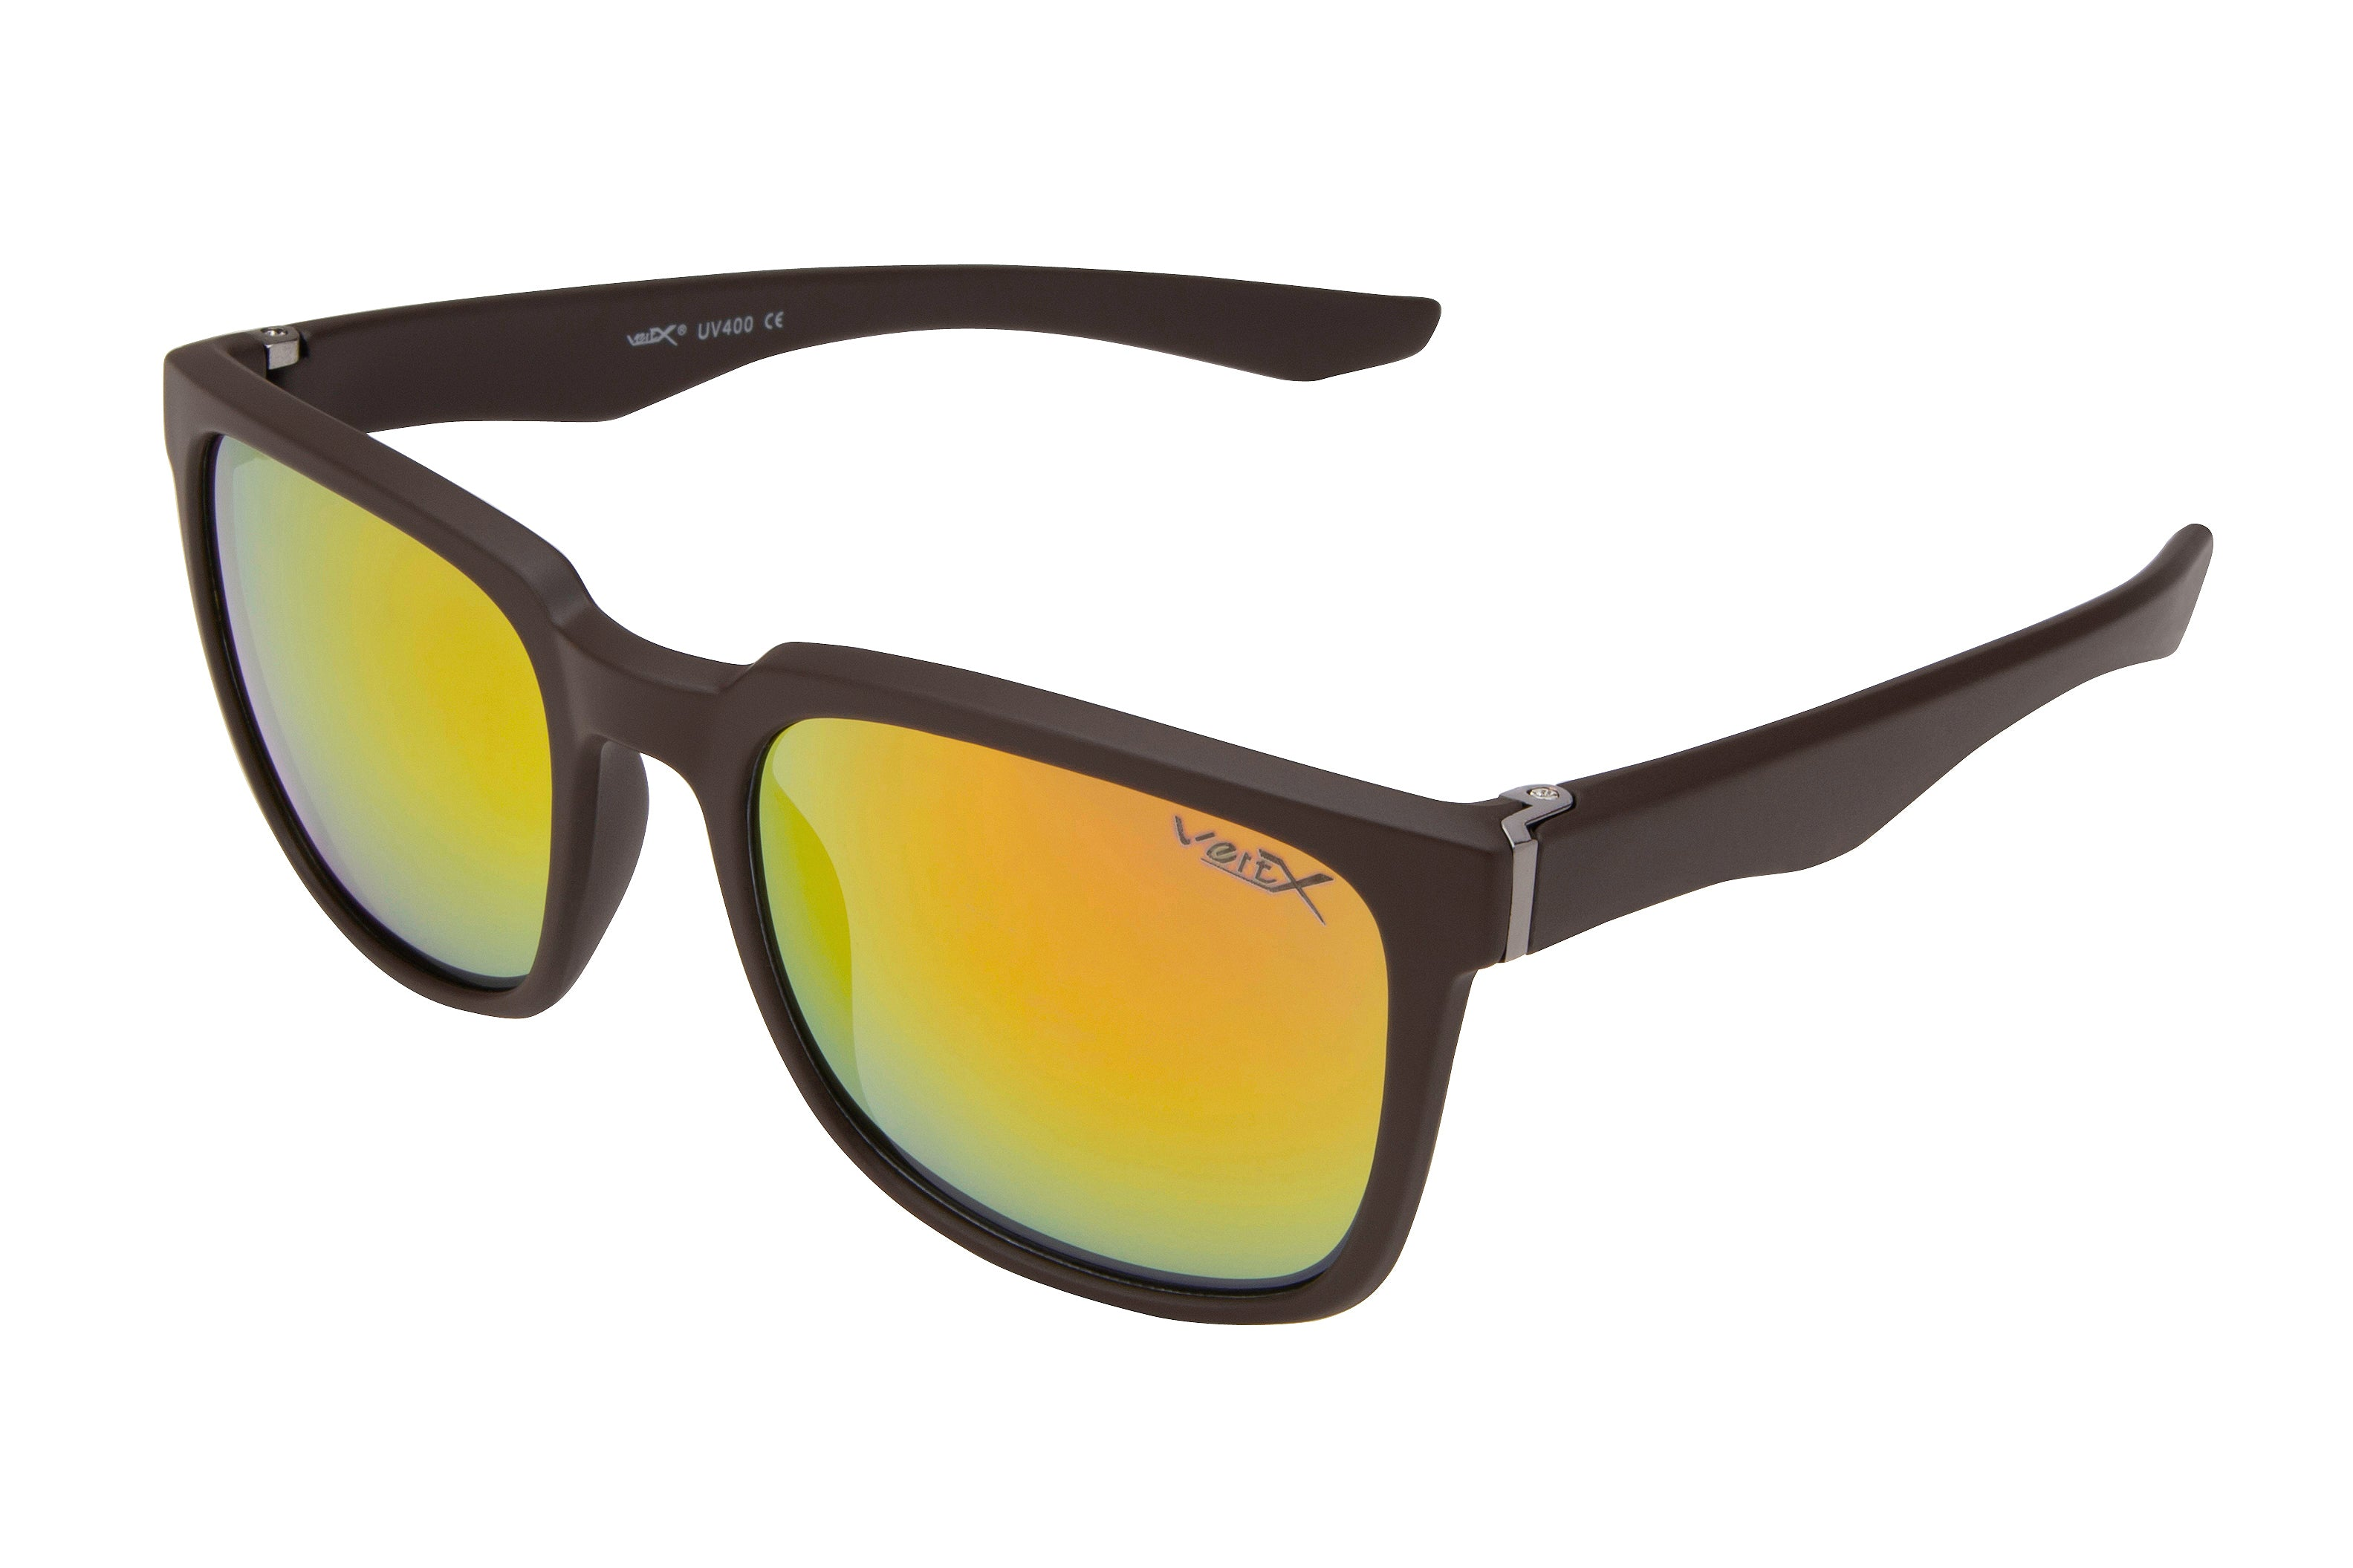 59236 - VertX PC Sport Sunglasses